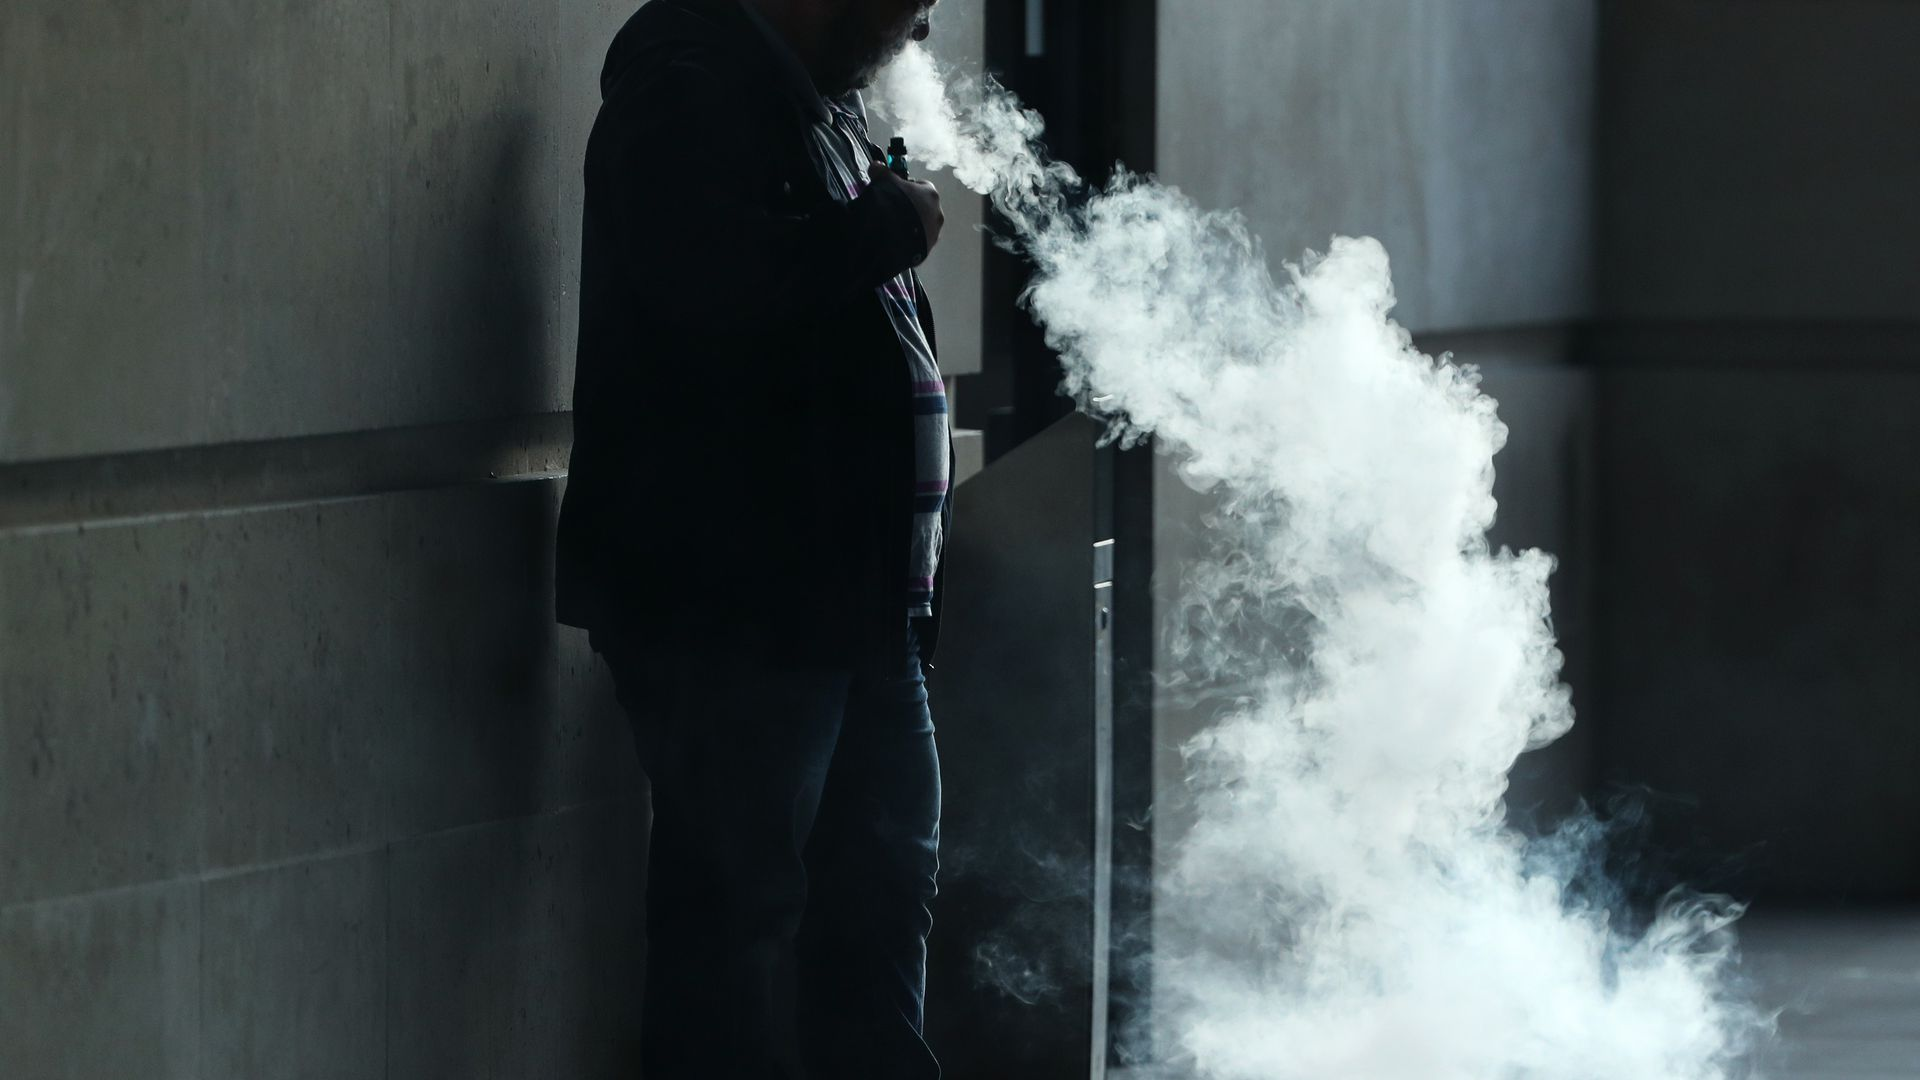 A person blowing smoke from an e-cigarette.